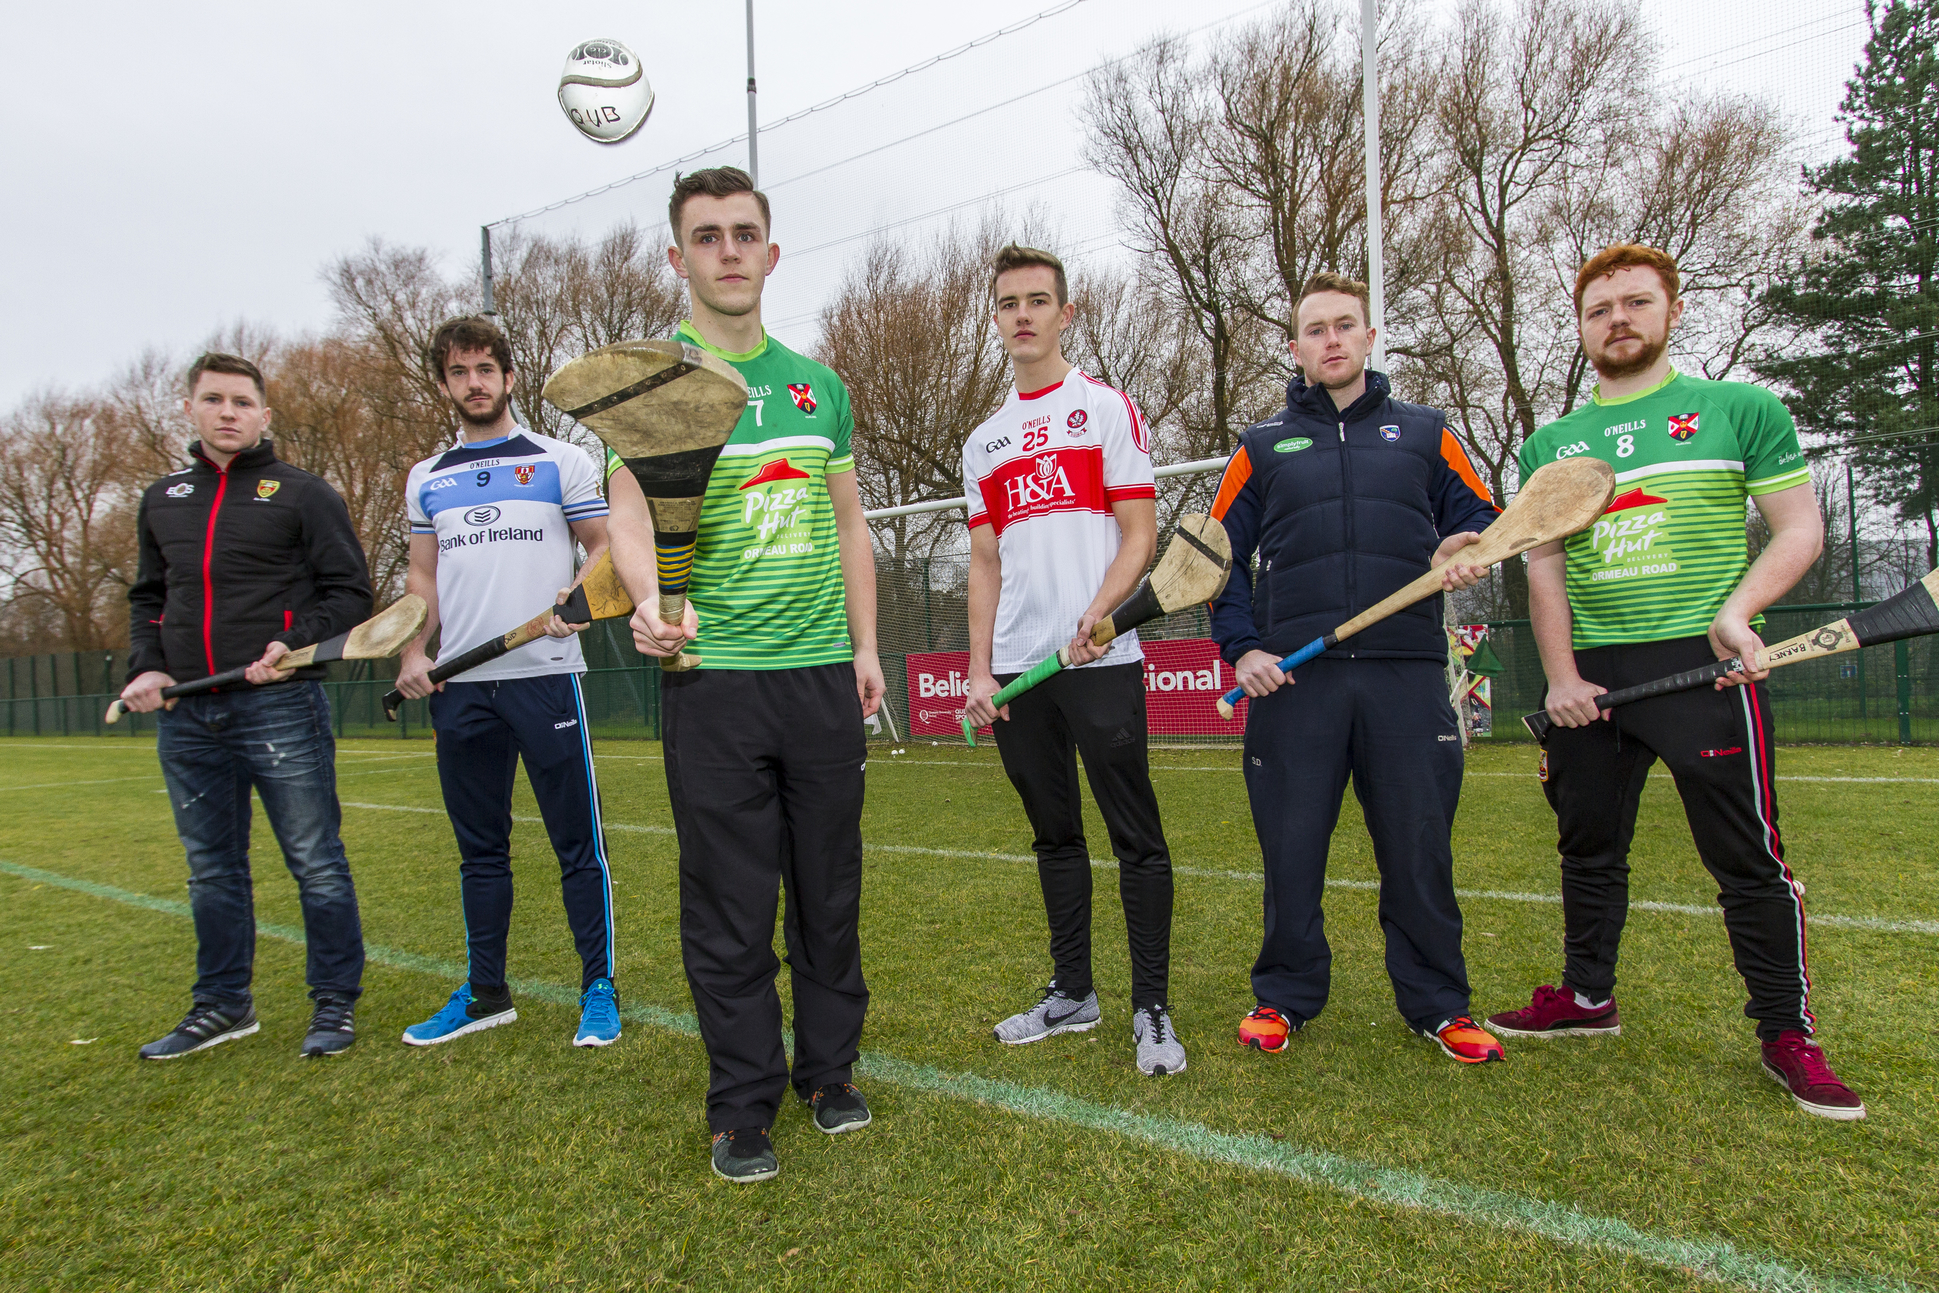 Conor McGurk Tournament in association with The Downey Group Launched for 2017